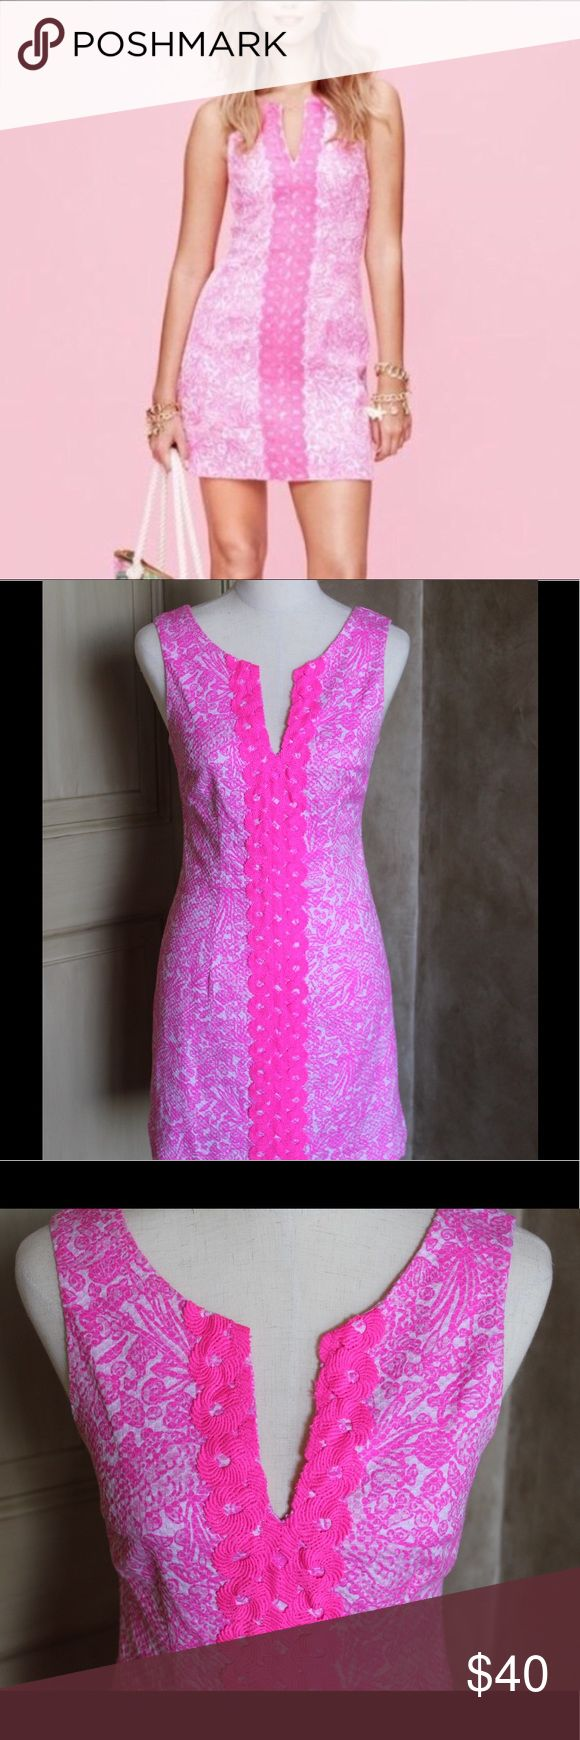 LILLY PULITZER FOR TARGET Pink Shift Dress Cute and fitted, pink Lilly for Target dress. Lowest price size 6 on Poshmark. Great condition!  Last image is stock photo. Lilly Pulitzer for Target Dresses Mini